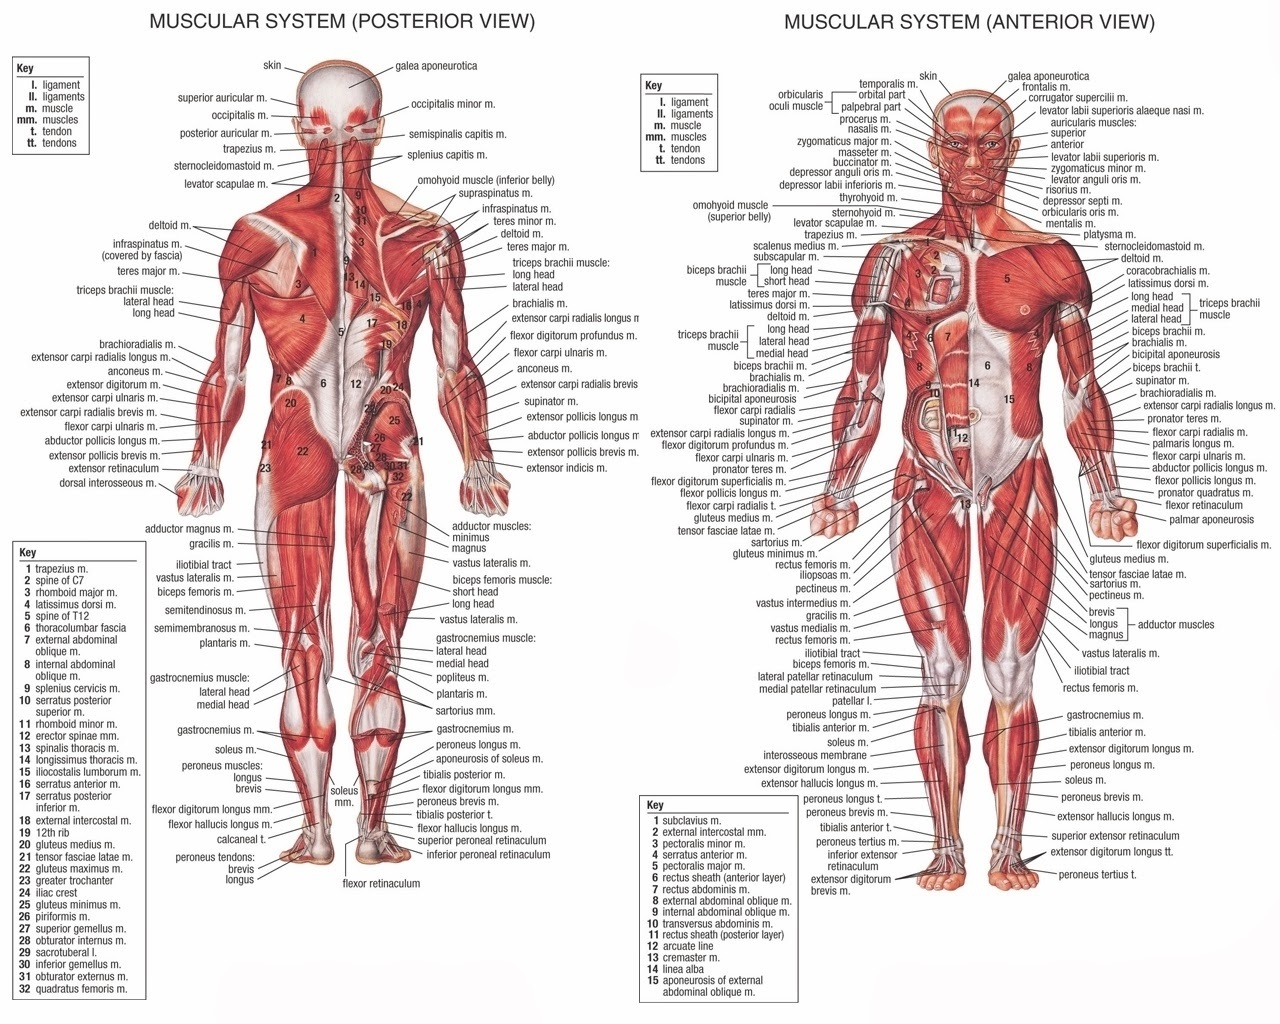 How Many Muscles Of The Human Body